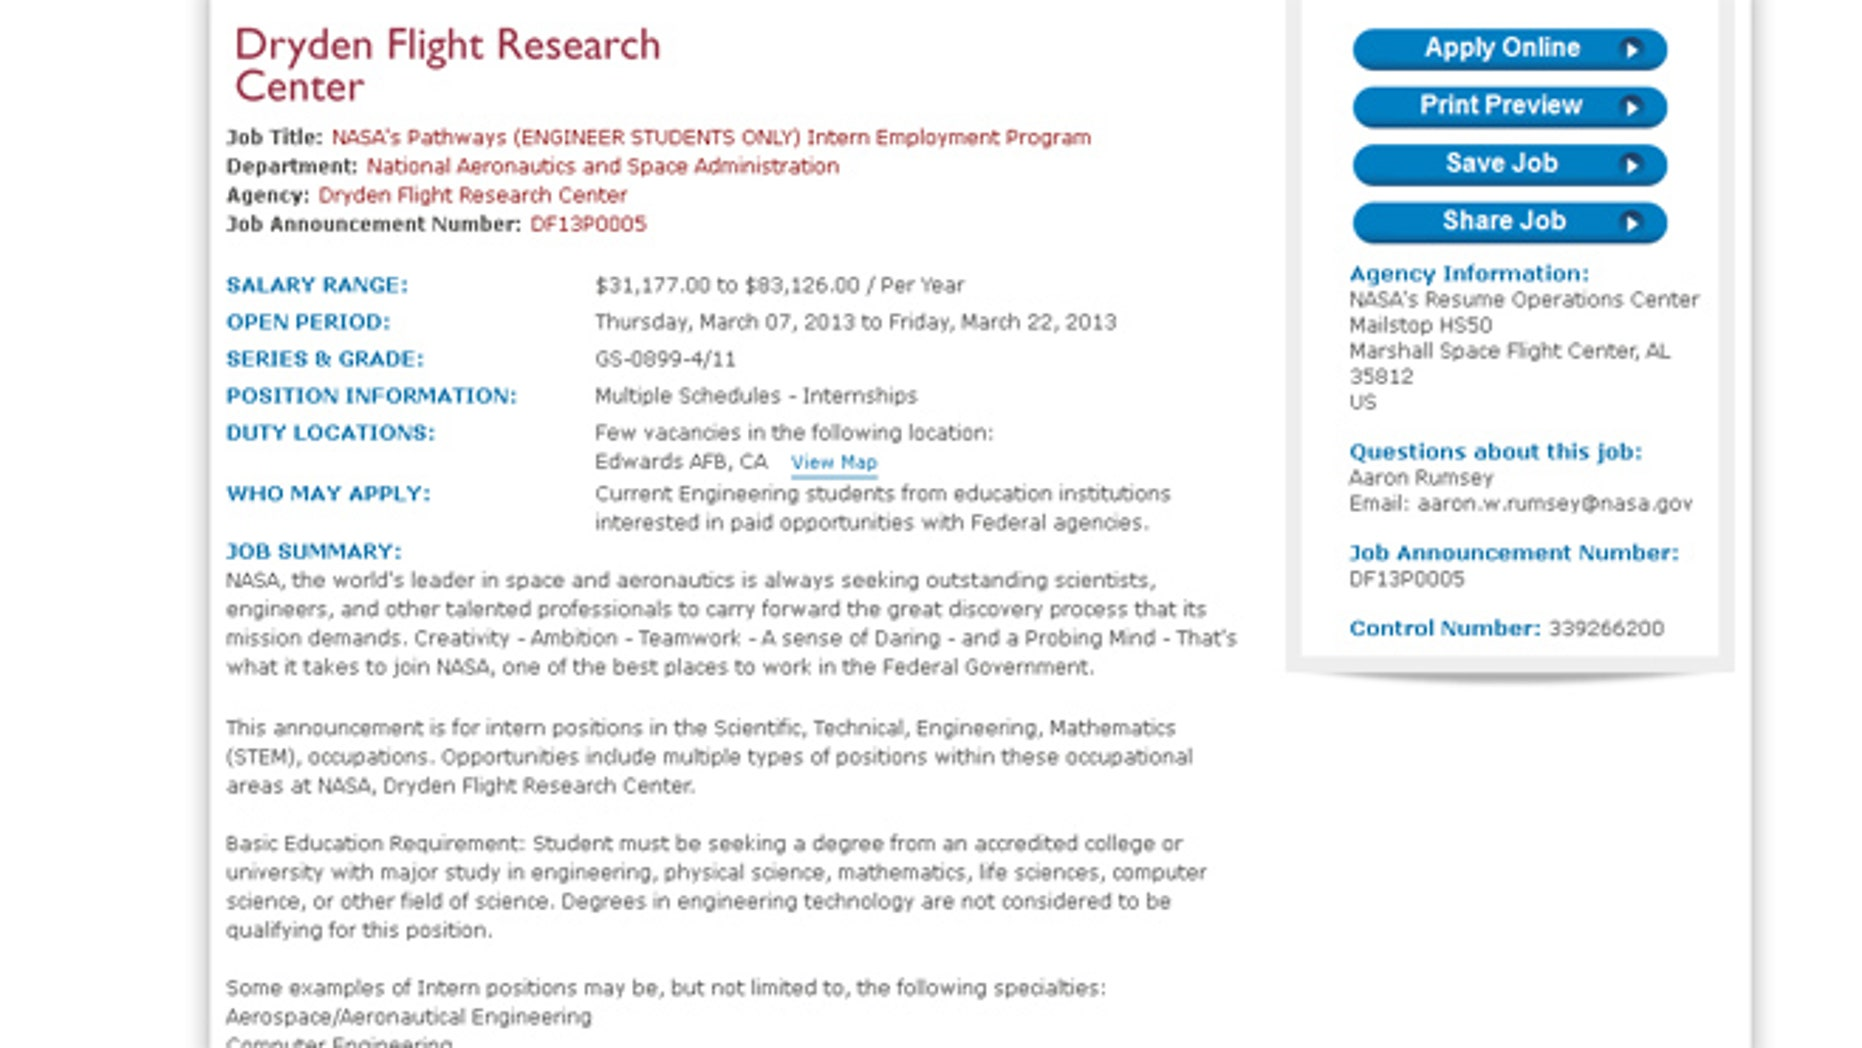 This image shows a listing for internship openings at the NASA Dryden Flight Research Center.